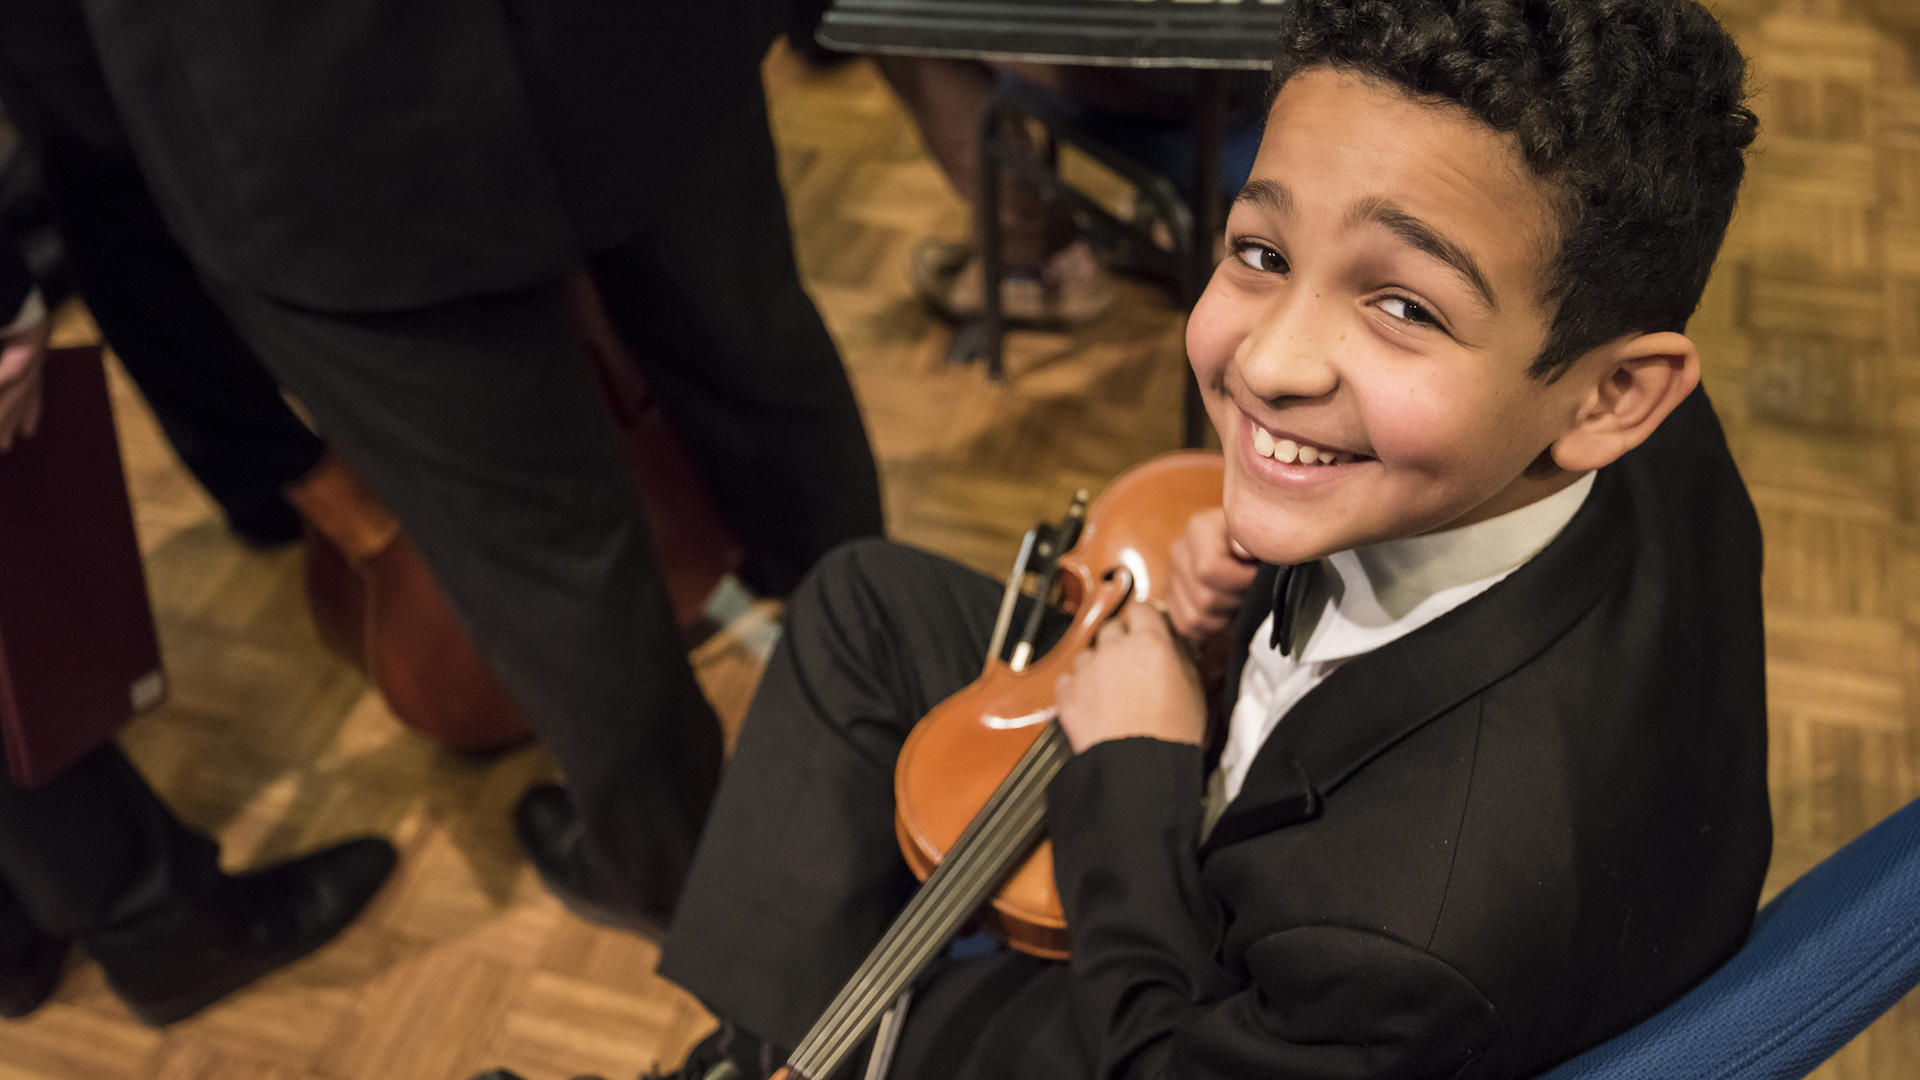 Smiling Violinist waits to play